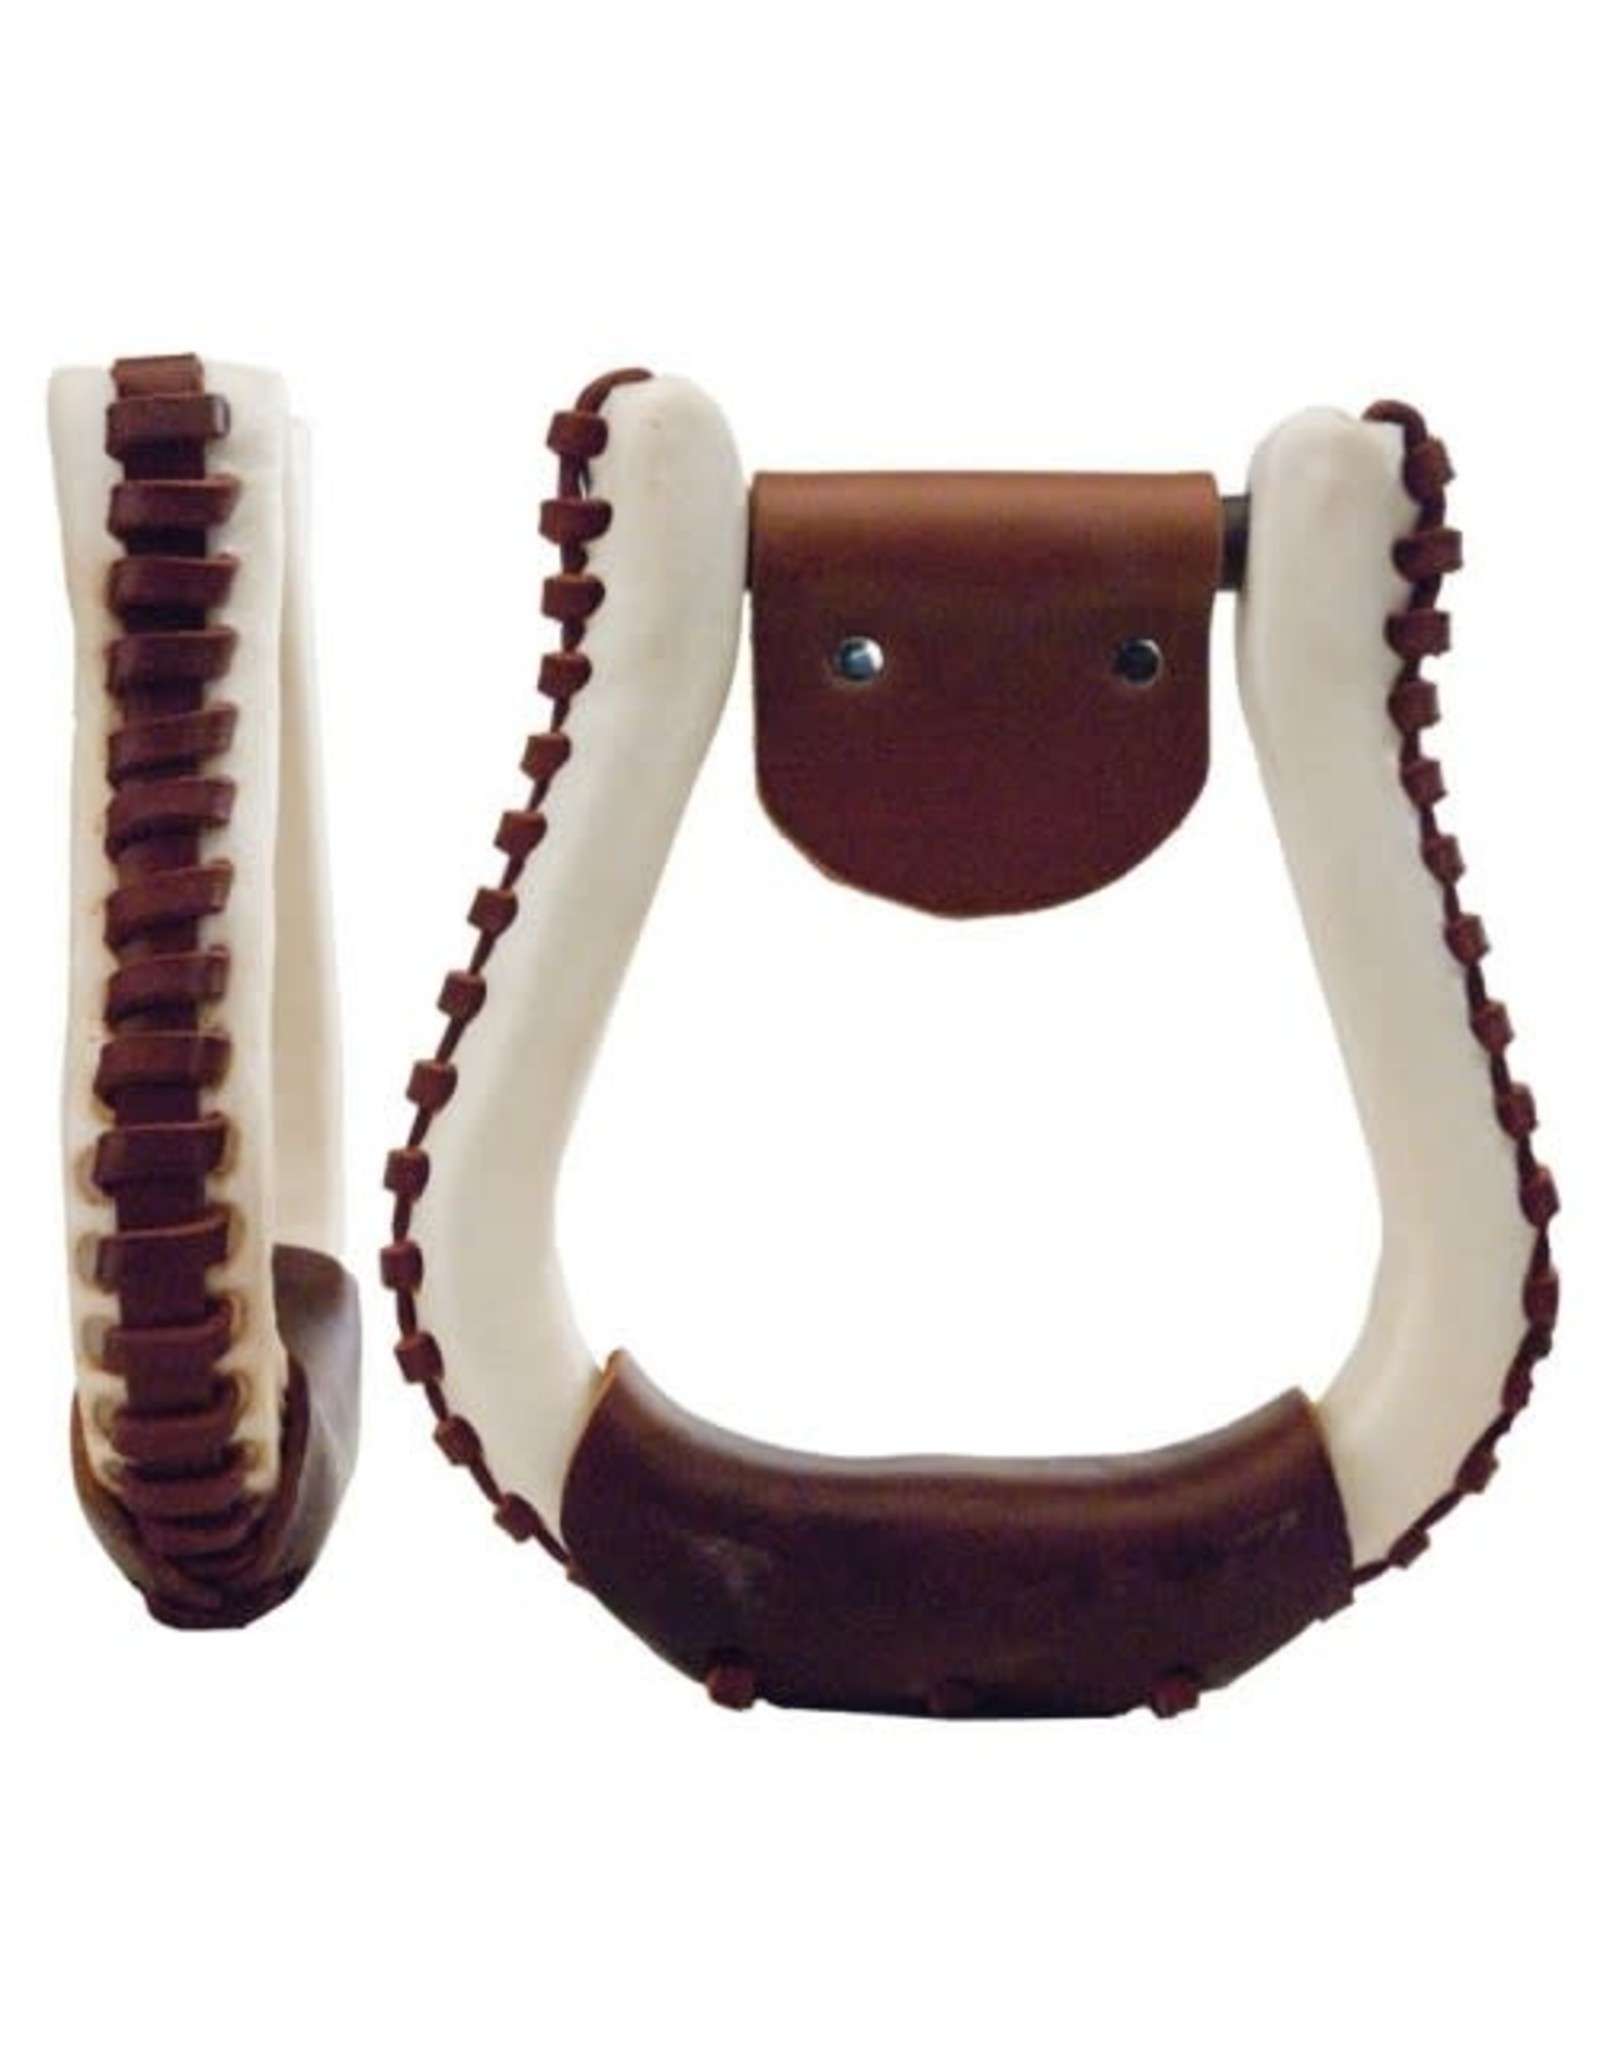 Western Rawhide Laced Contest Stirrups, Leather